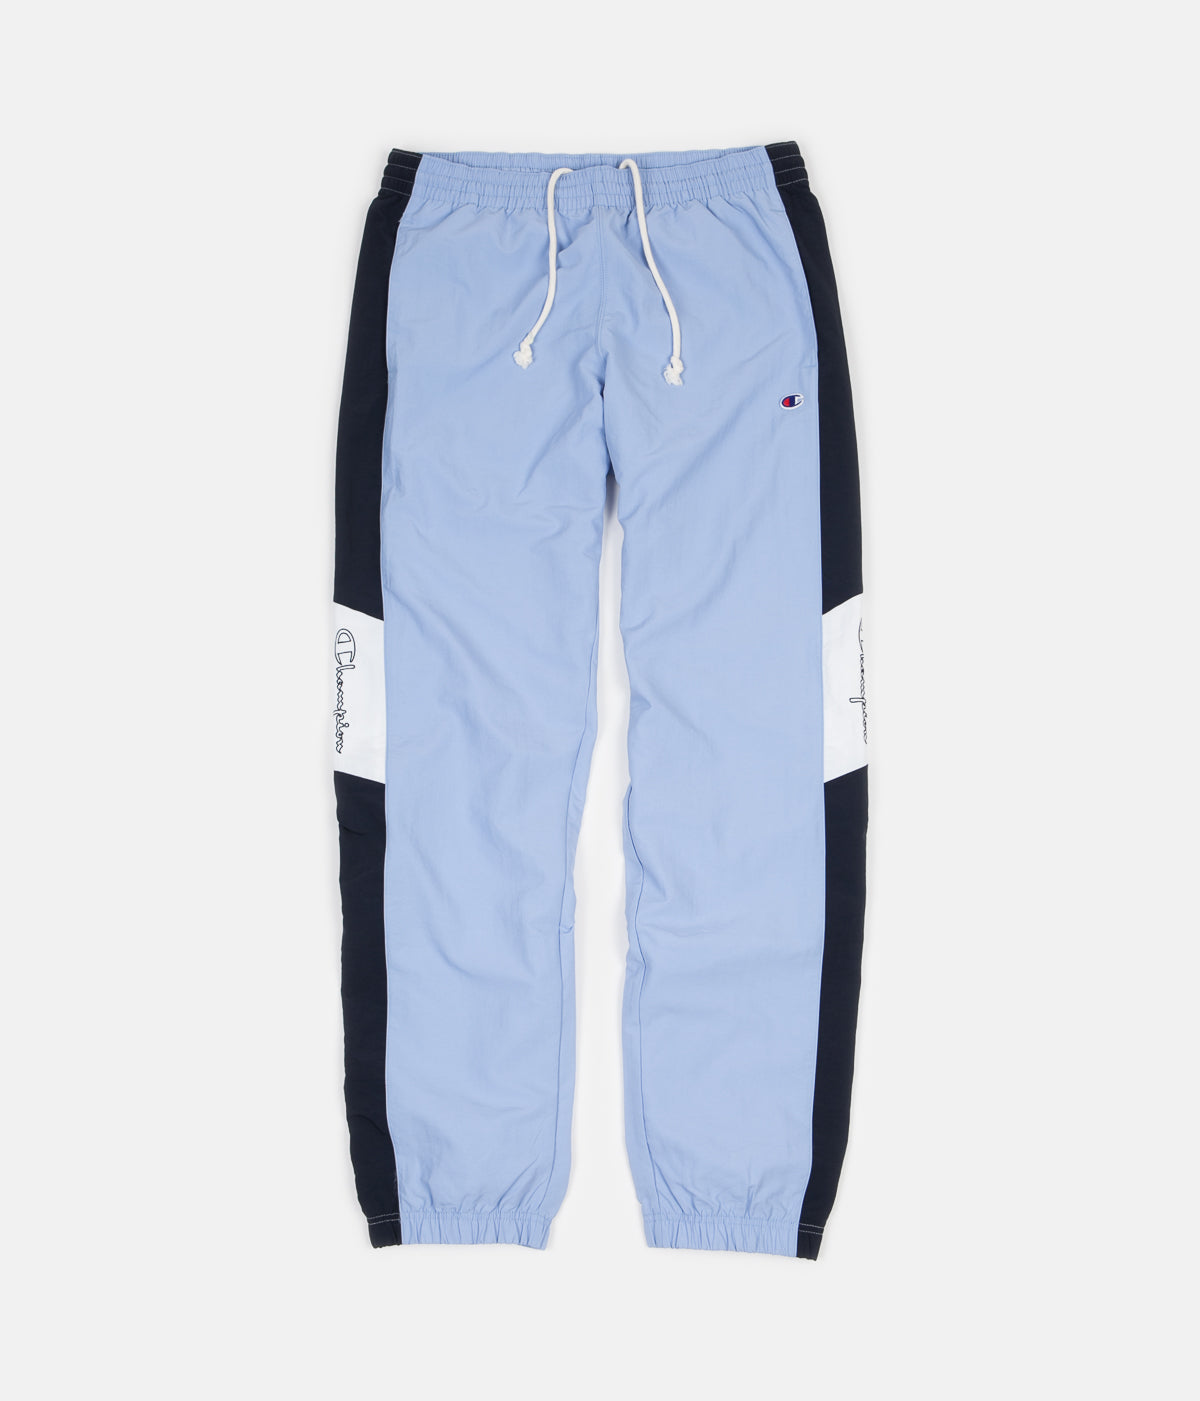 Champion Elastic Cuff Tracksuit Sweatpants - Light Blue / Navy / White